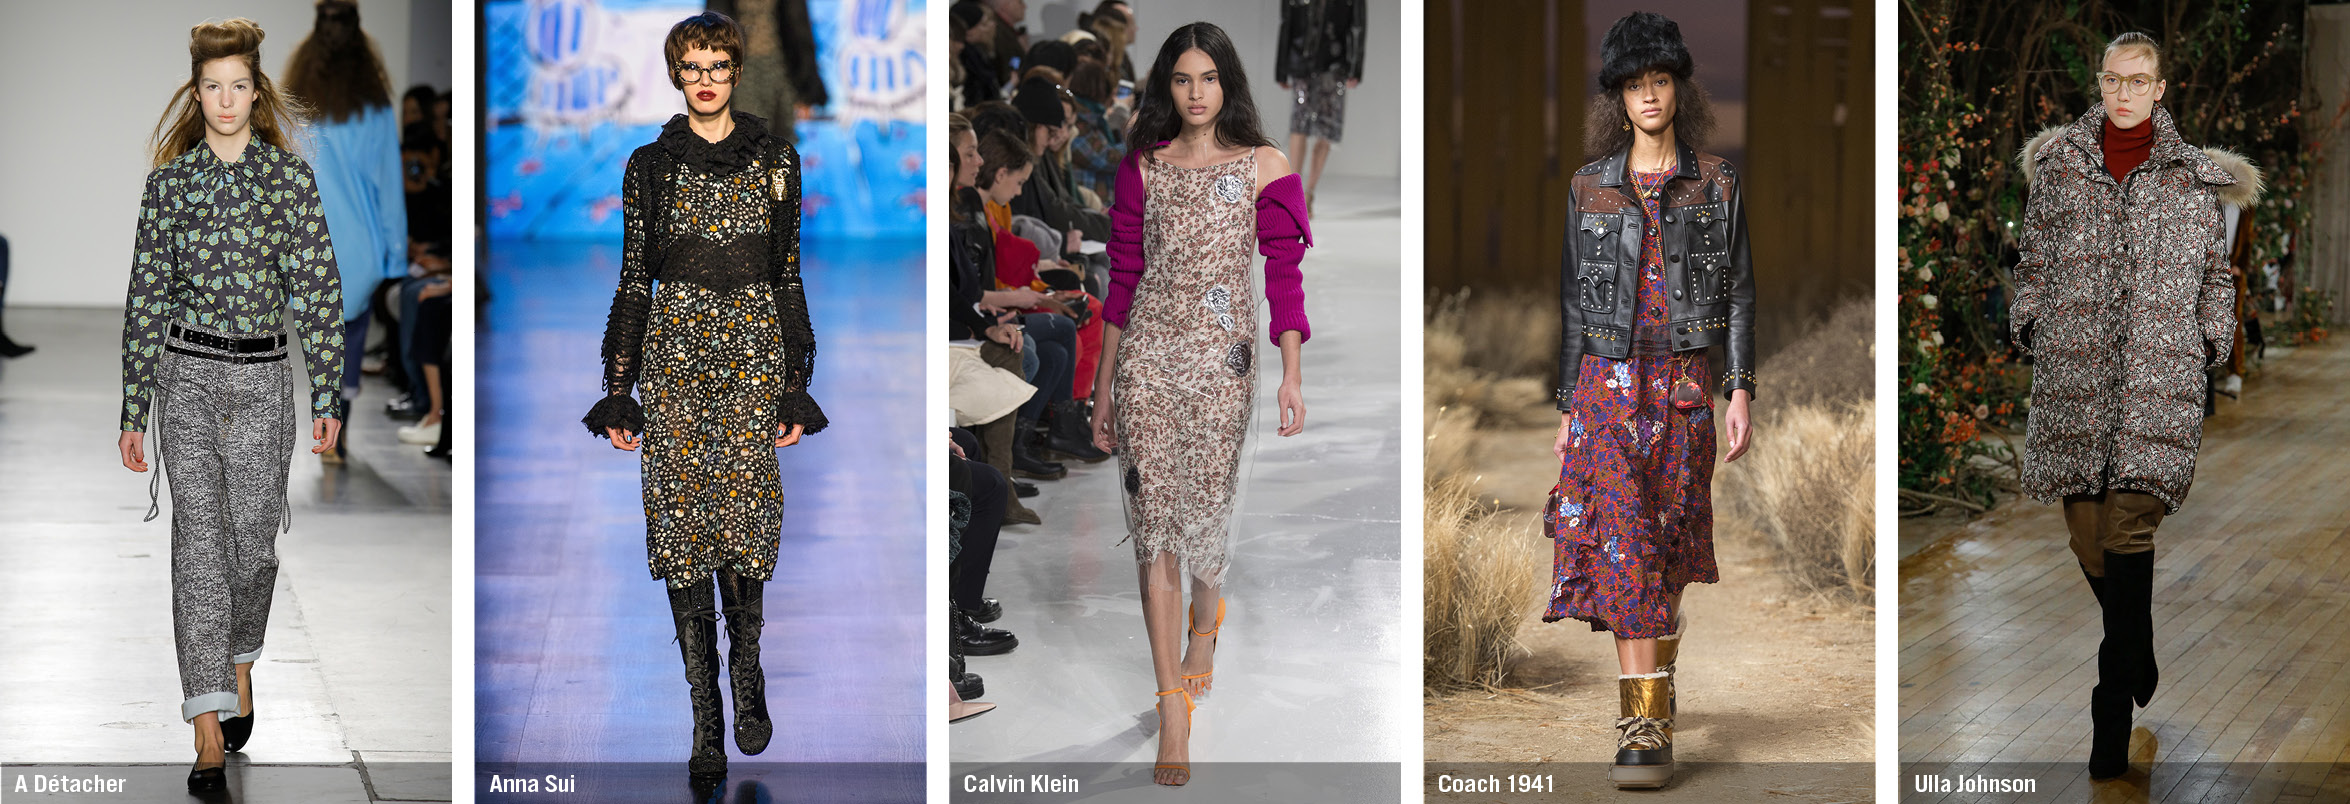 HOJ-REPORTS-RUNWAY-ANALYSIS-NEW-YORK-FASHION-WEEK-FEBRUARY-2017-PRINT-PATTERN-TREND-DIRECTION-DITSY-OBSESSION